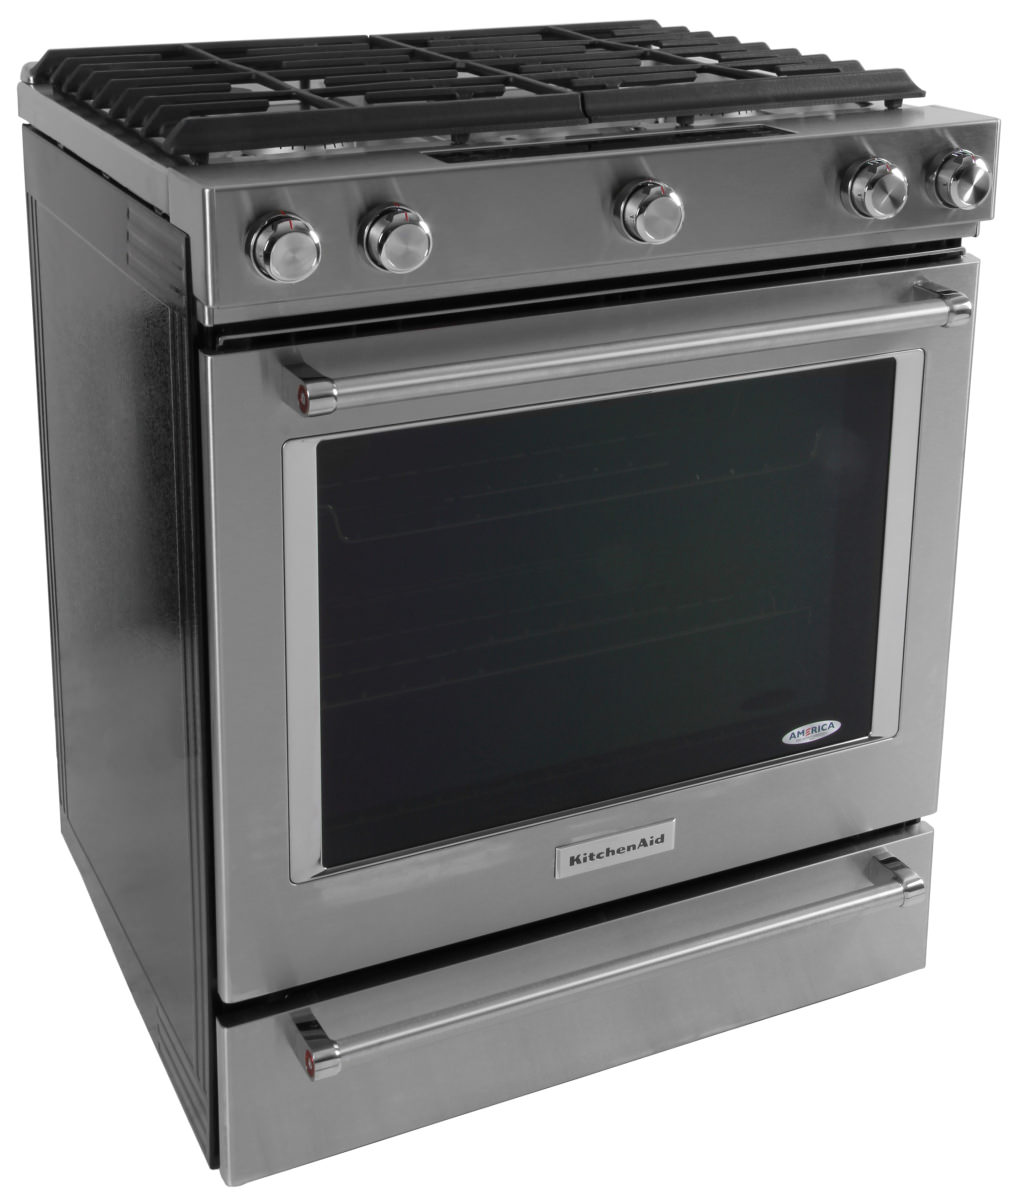 The KitchenAid KSDB900ESS Dual Fuel Slide In Range.